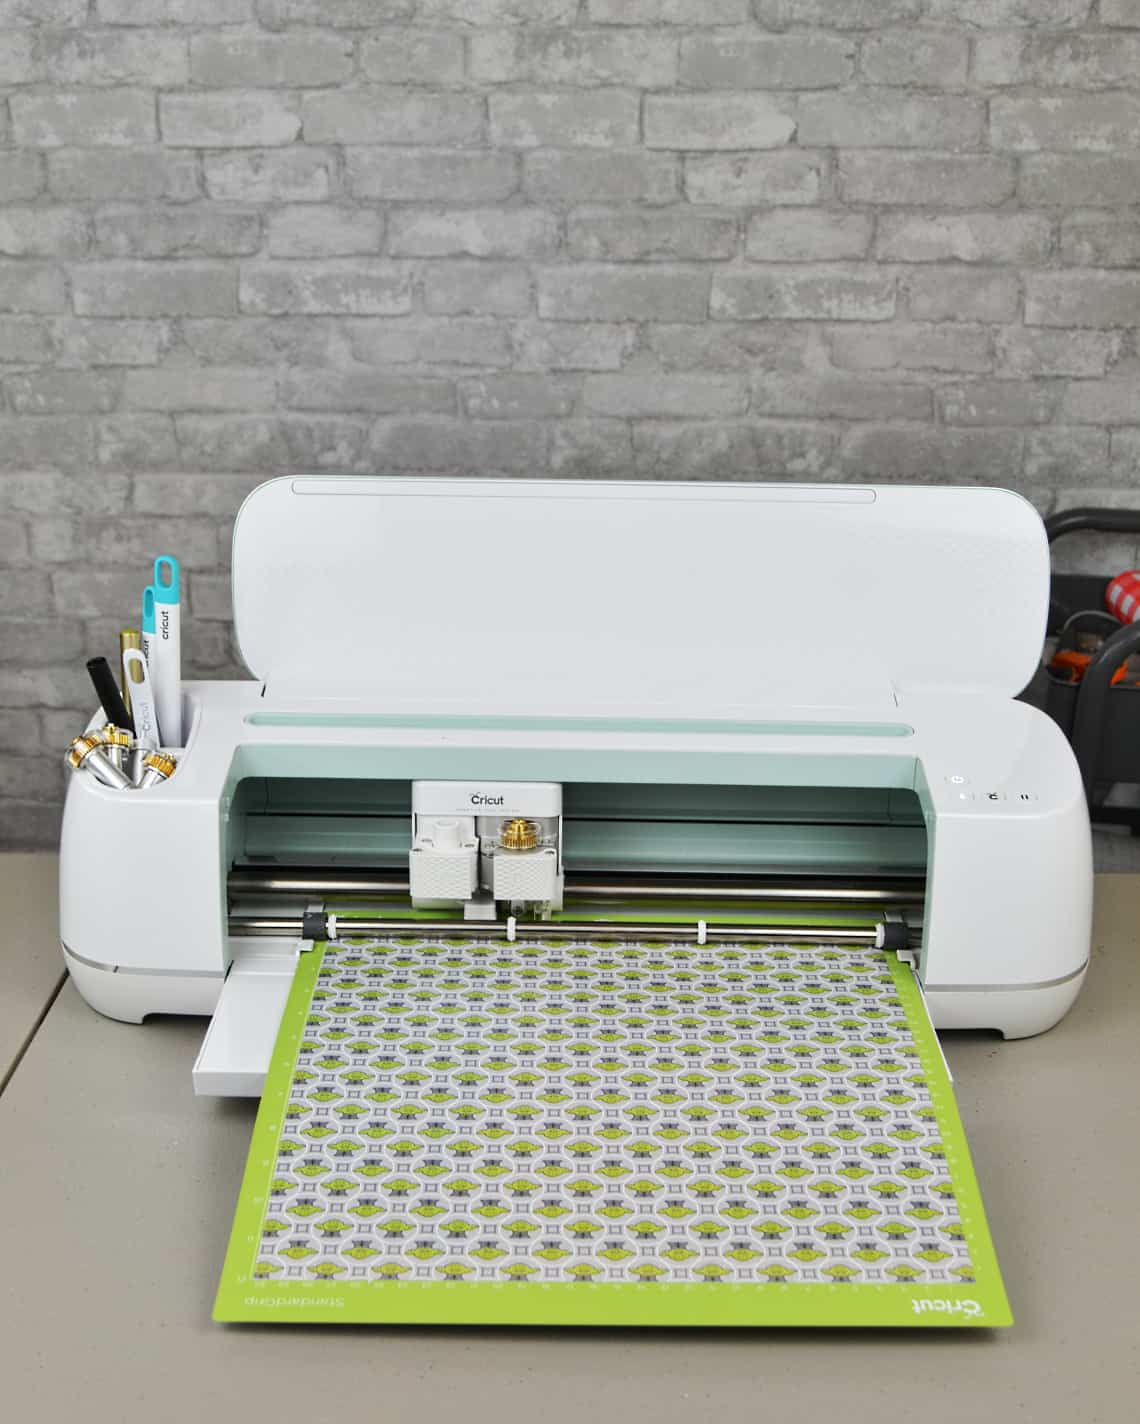 Cricut Maker with vinyl loaded onto mat